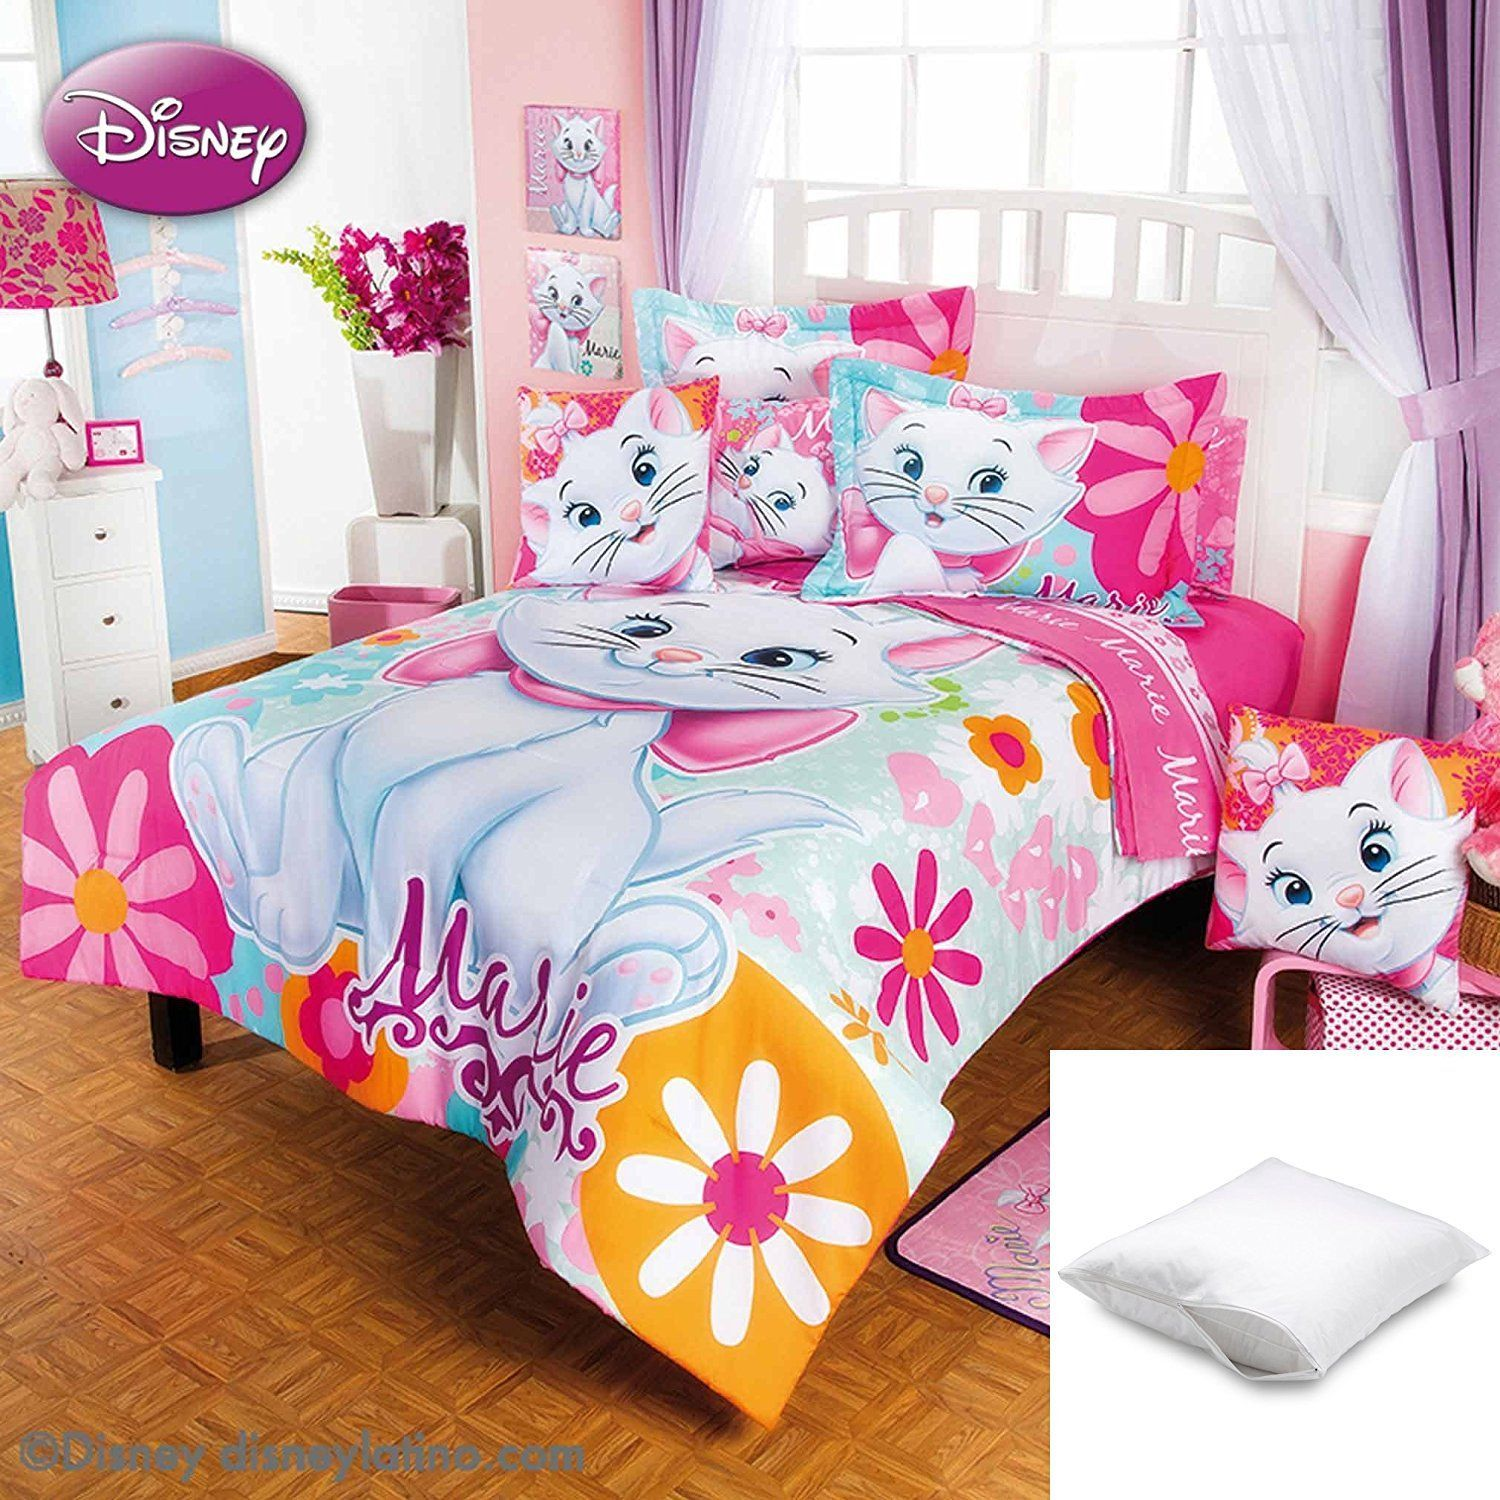 Disney Marie Flores 6 Pc Comforter Set Twin Bundled With One Pillow Protector Price 132 81 Free Shippi Comforter Sets Disney Bedding Sets Kids Comforters